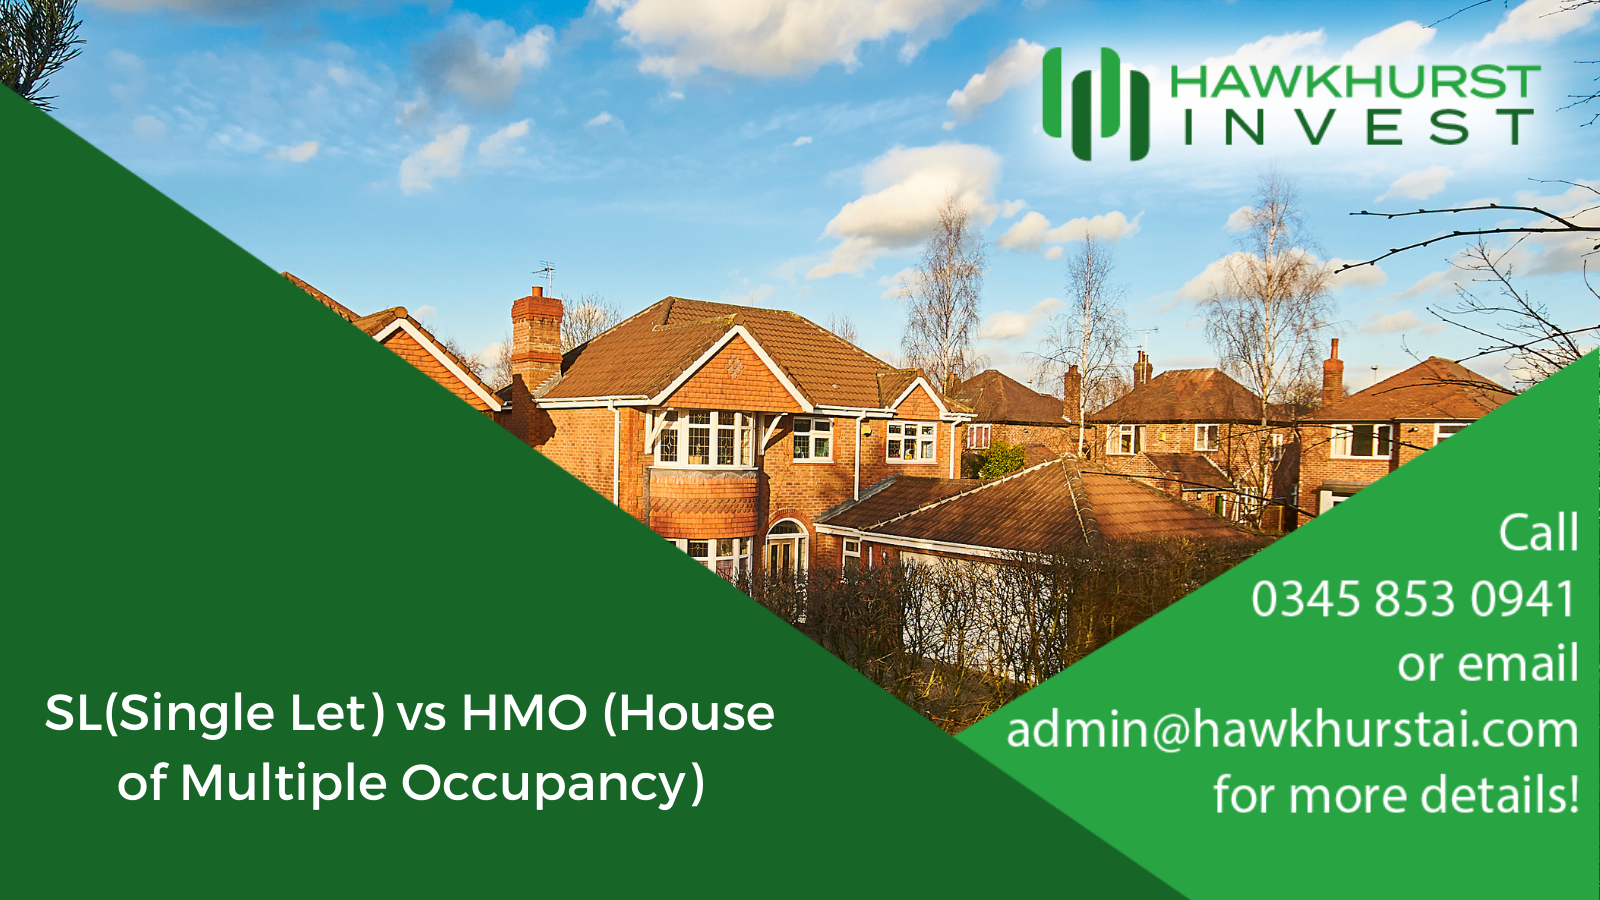 House of Multiple Occupancy